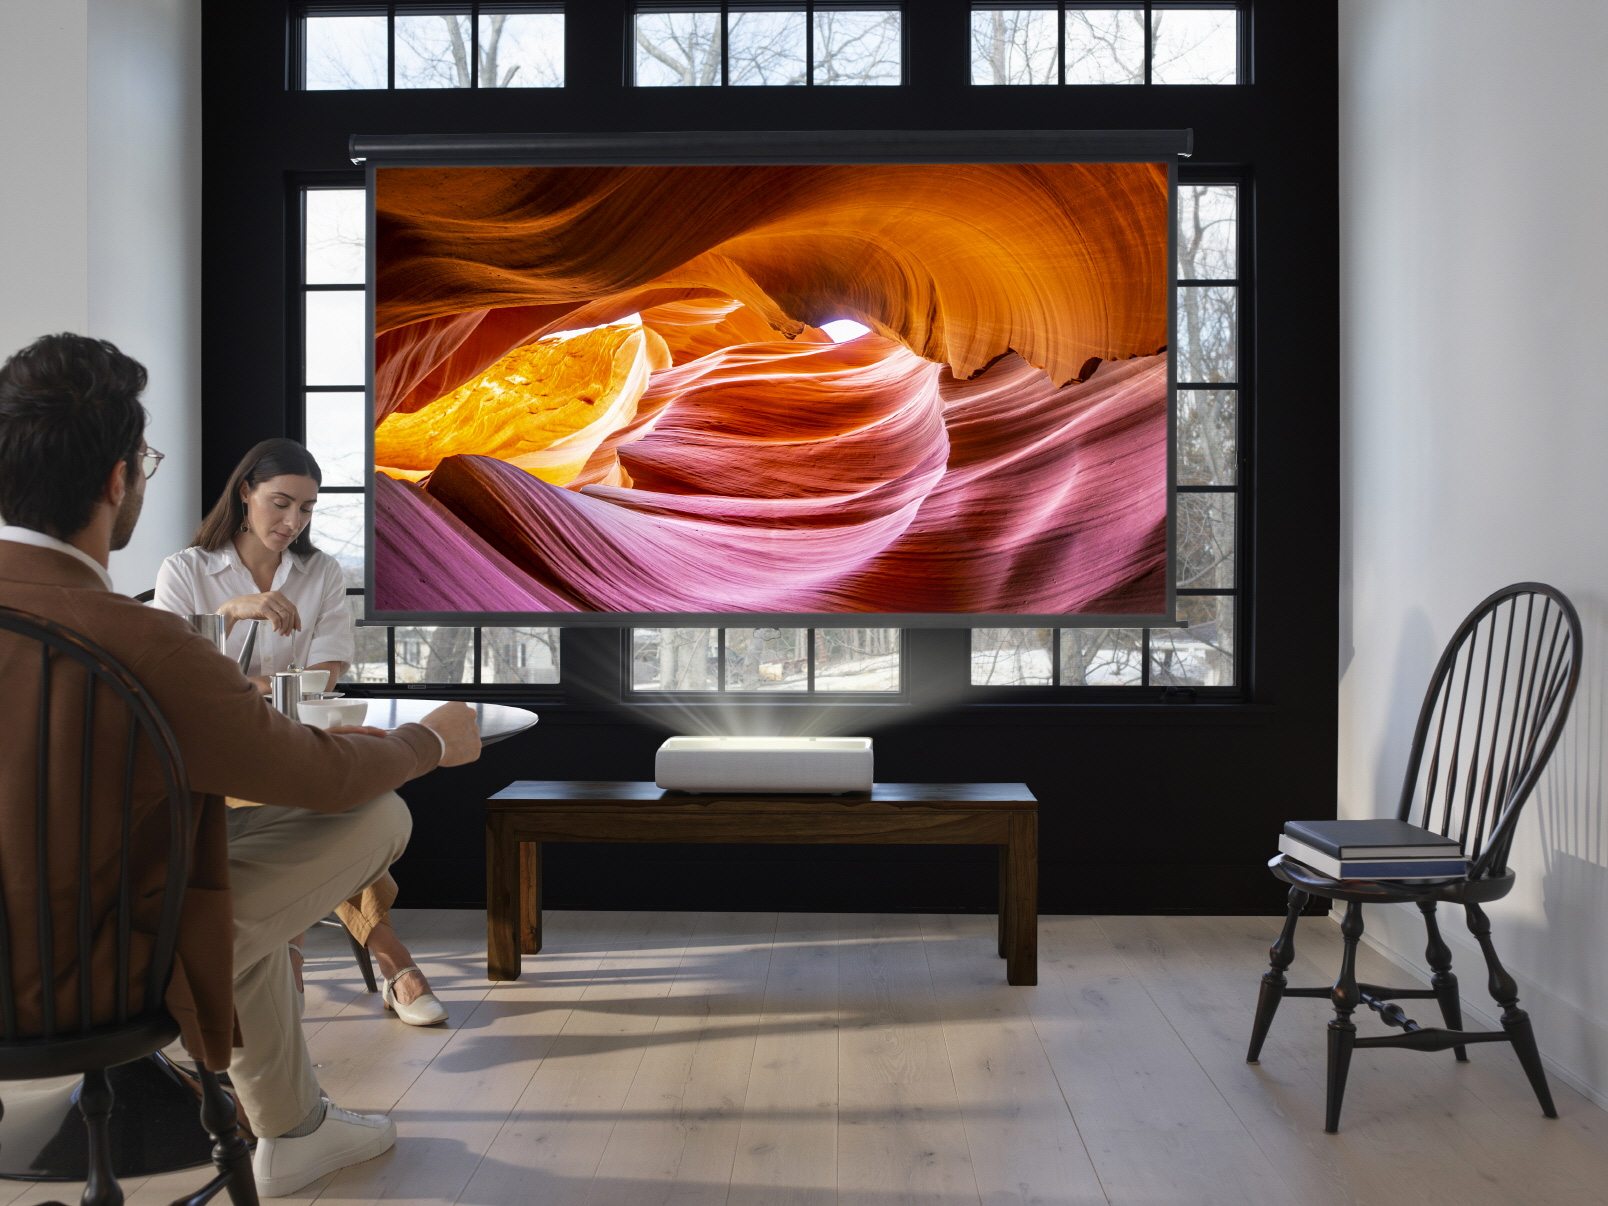 Samsung Debuts 4K UST Home Projector at werd.com